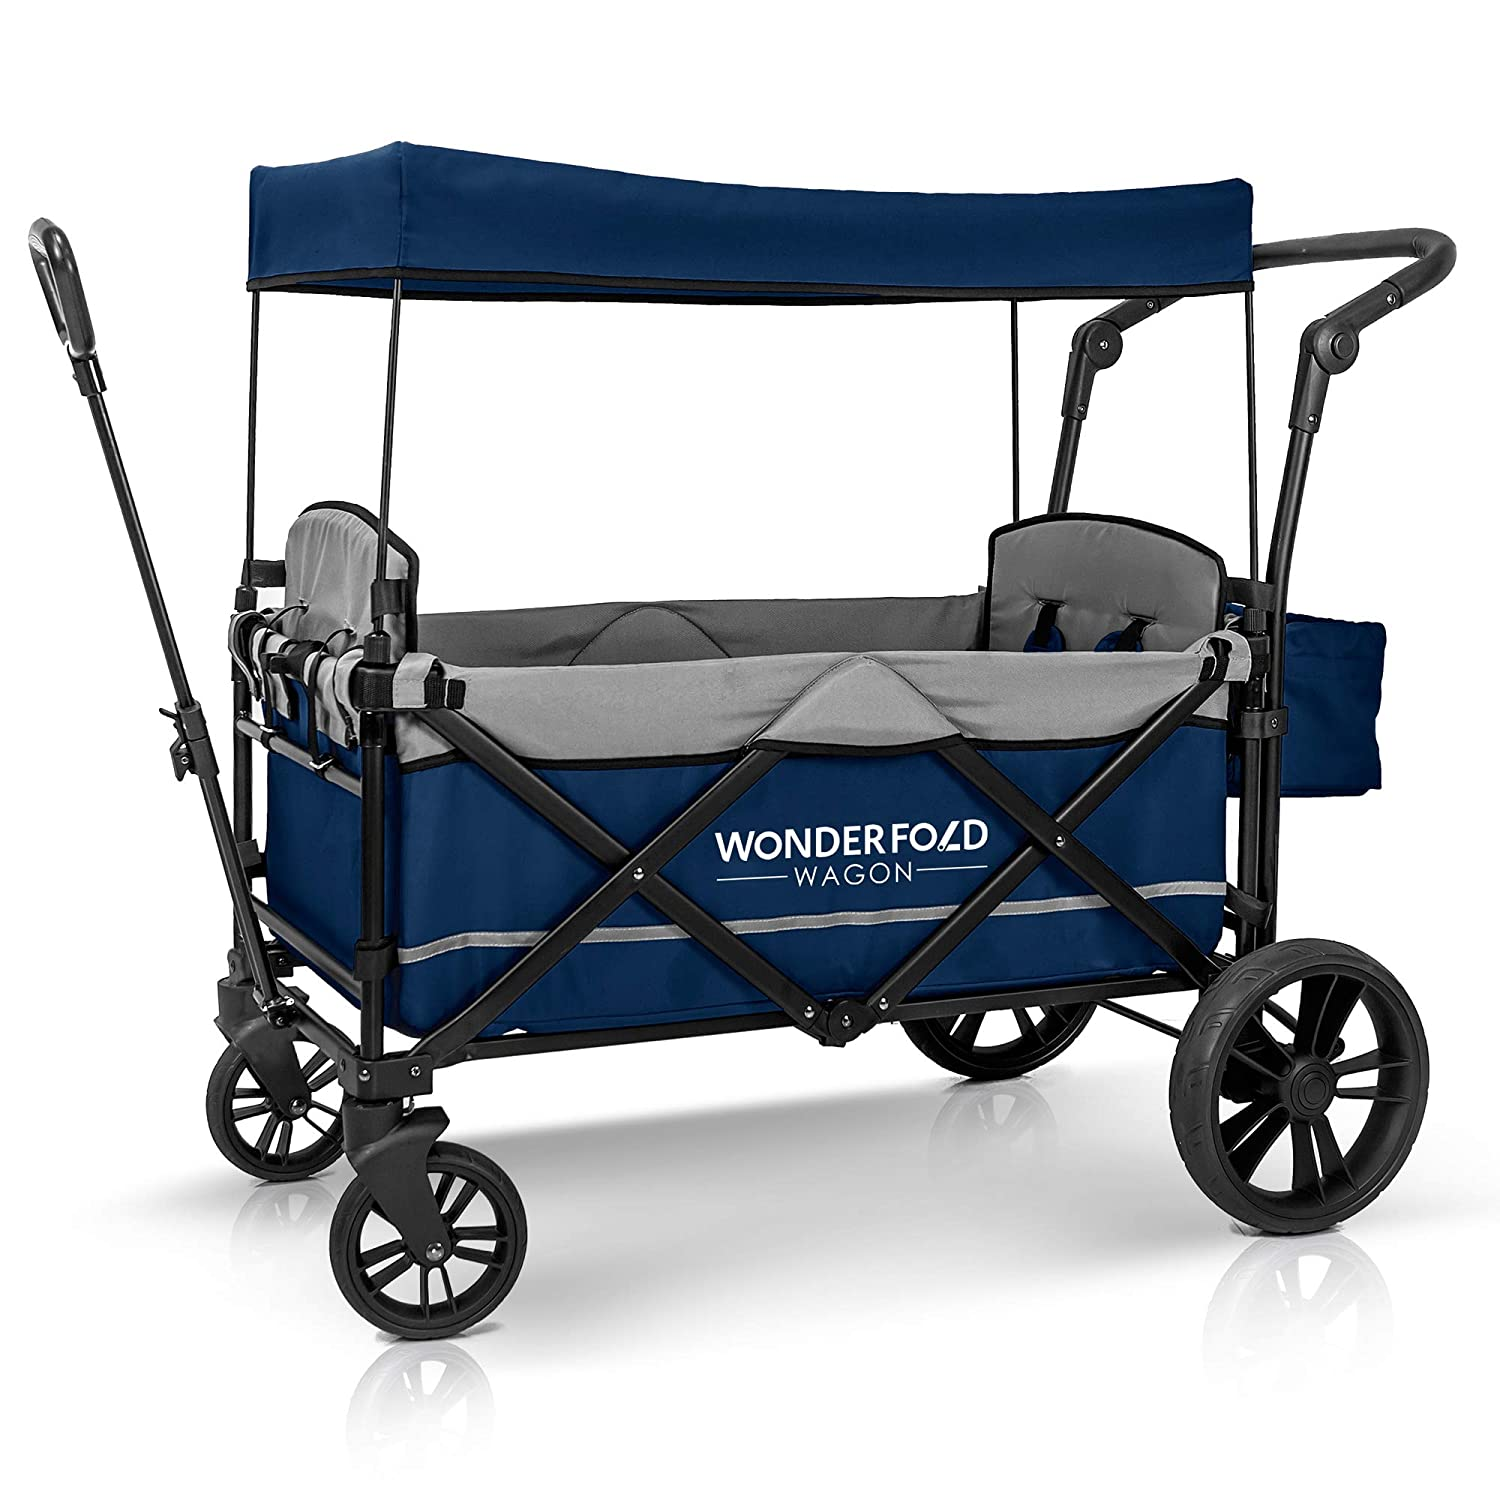 WonderFold Baby XL 2 Passenger Push Pull Twin Double Stroller Wagon with Adjustable Handle Bar, Removable Canopy, Safety Seats with 5-Point Harness, One-Step Foot Brake, Safety Reflective Strip Navy